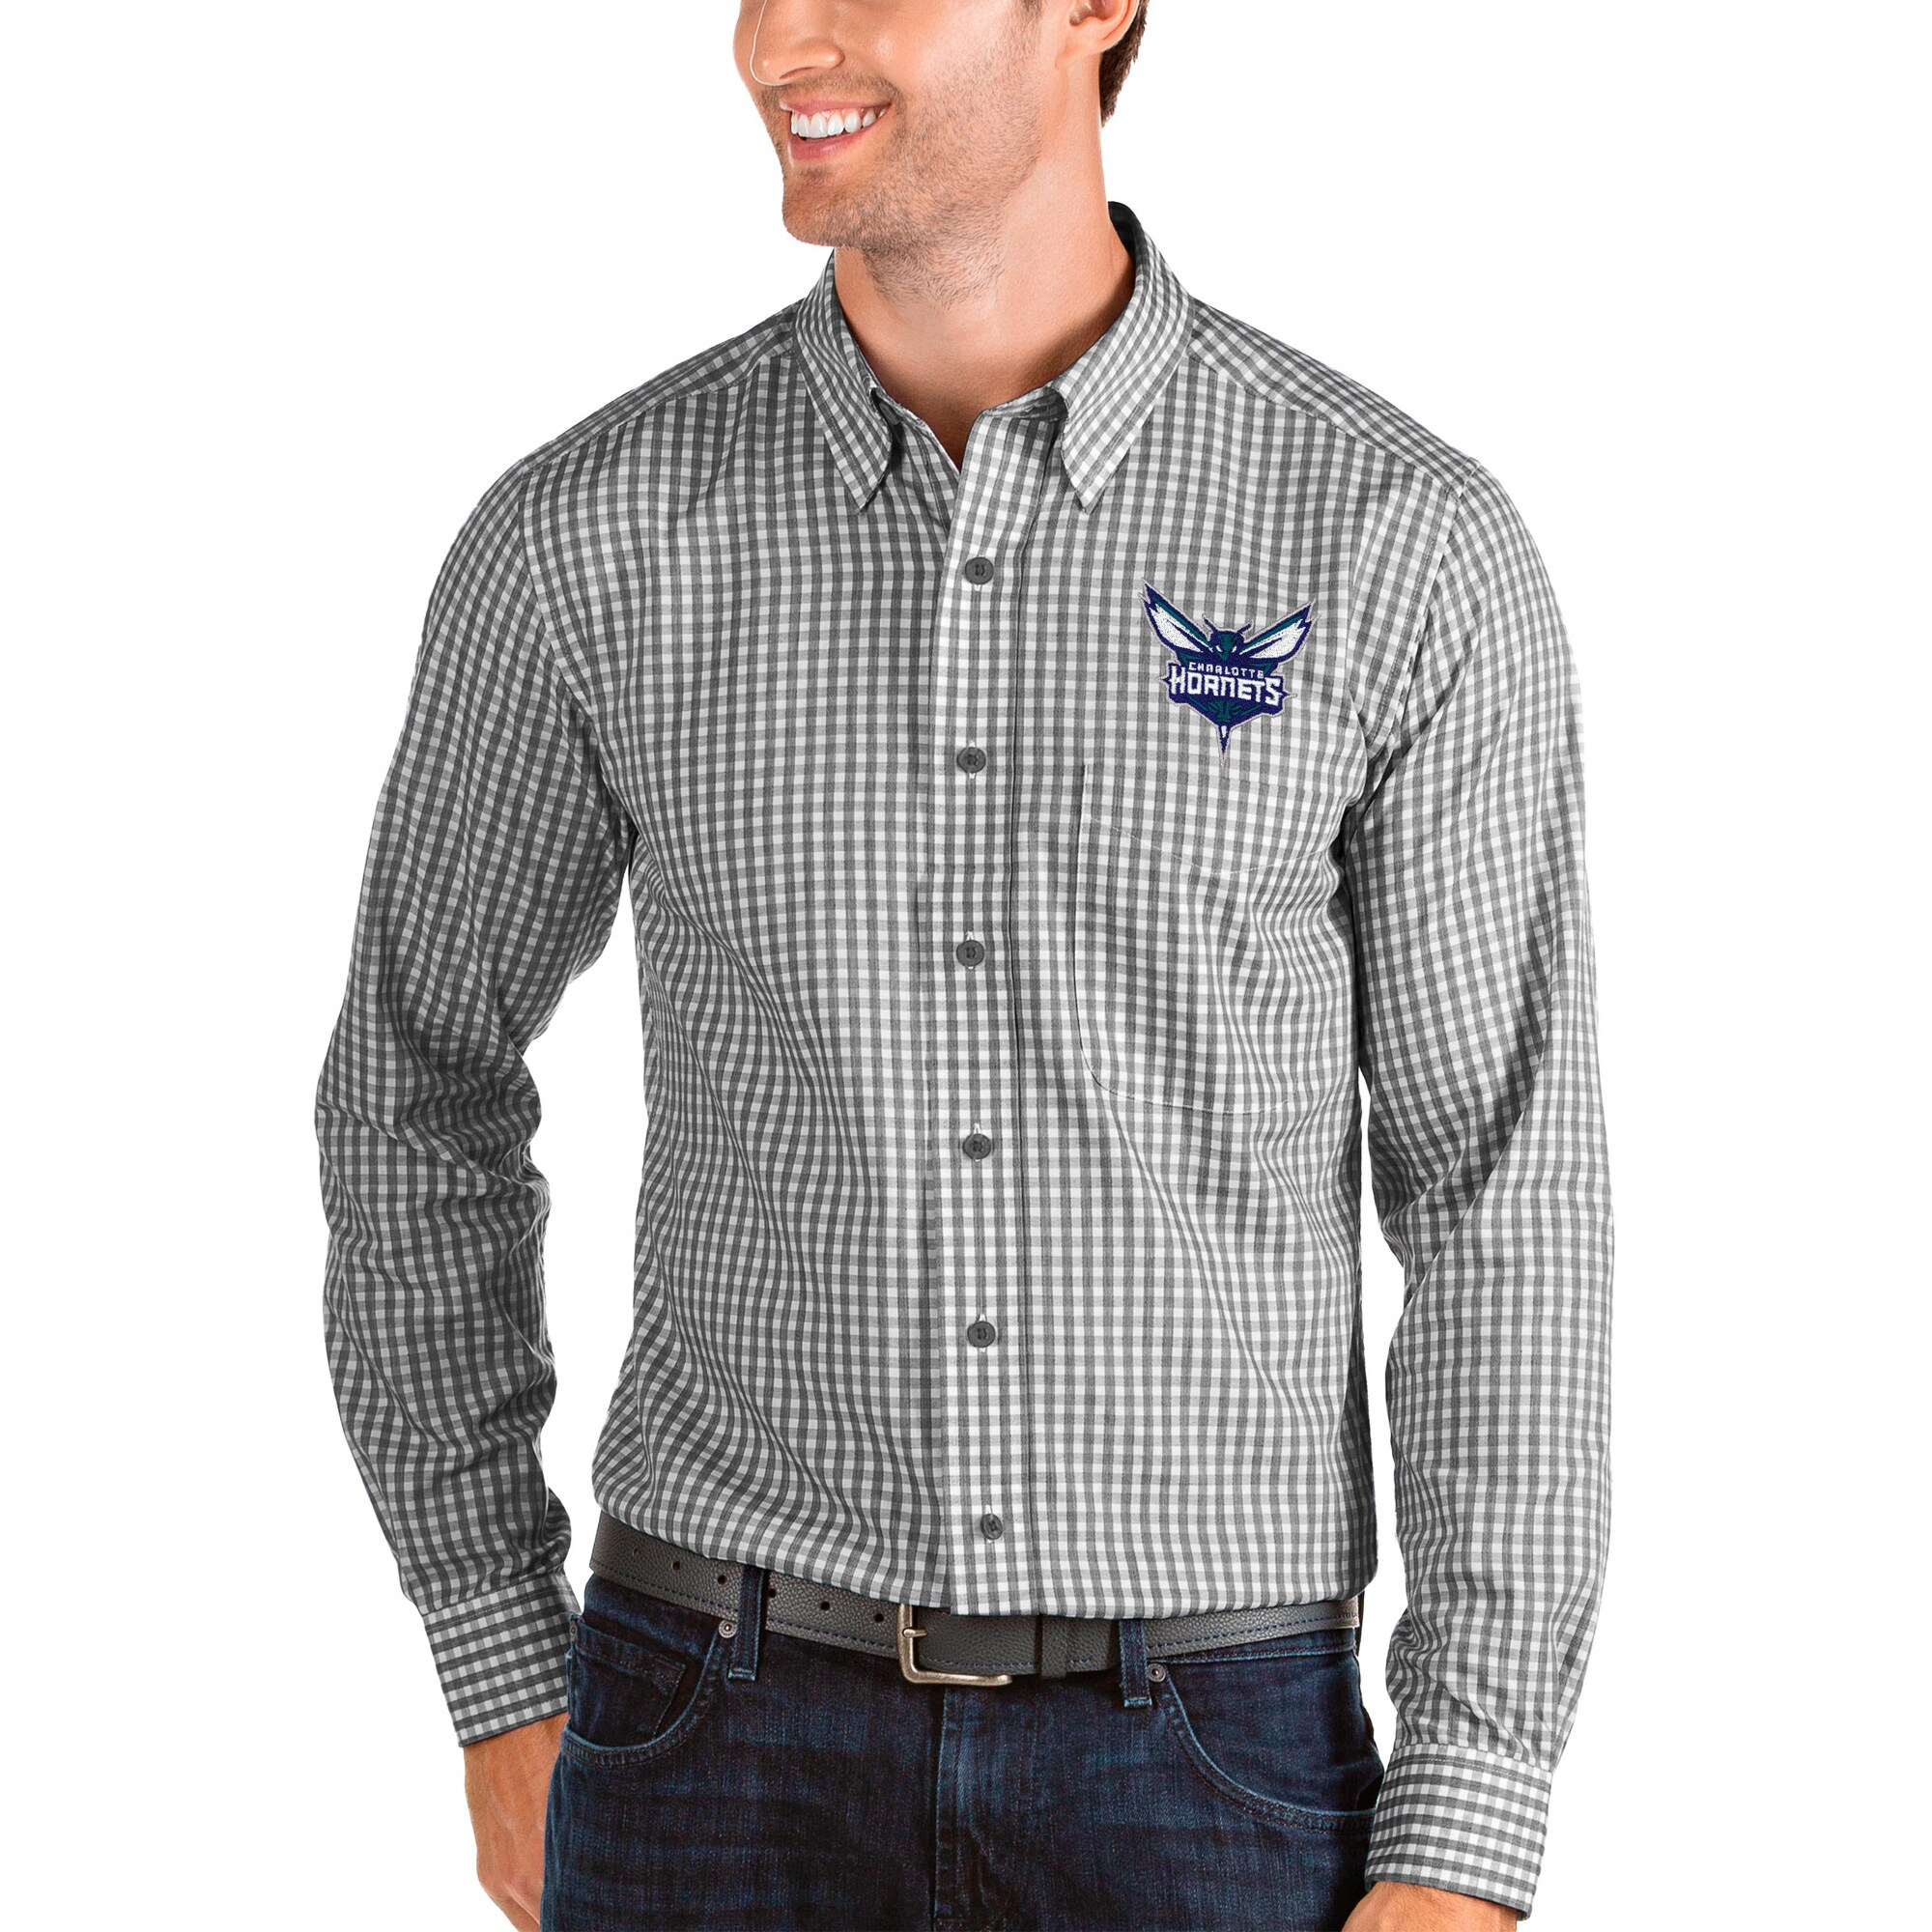 Charlotte Hornets Antigua Structure Long Sleeve Button-Up Shirt - Black/White